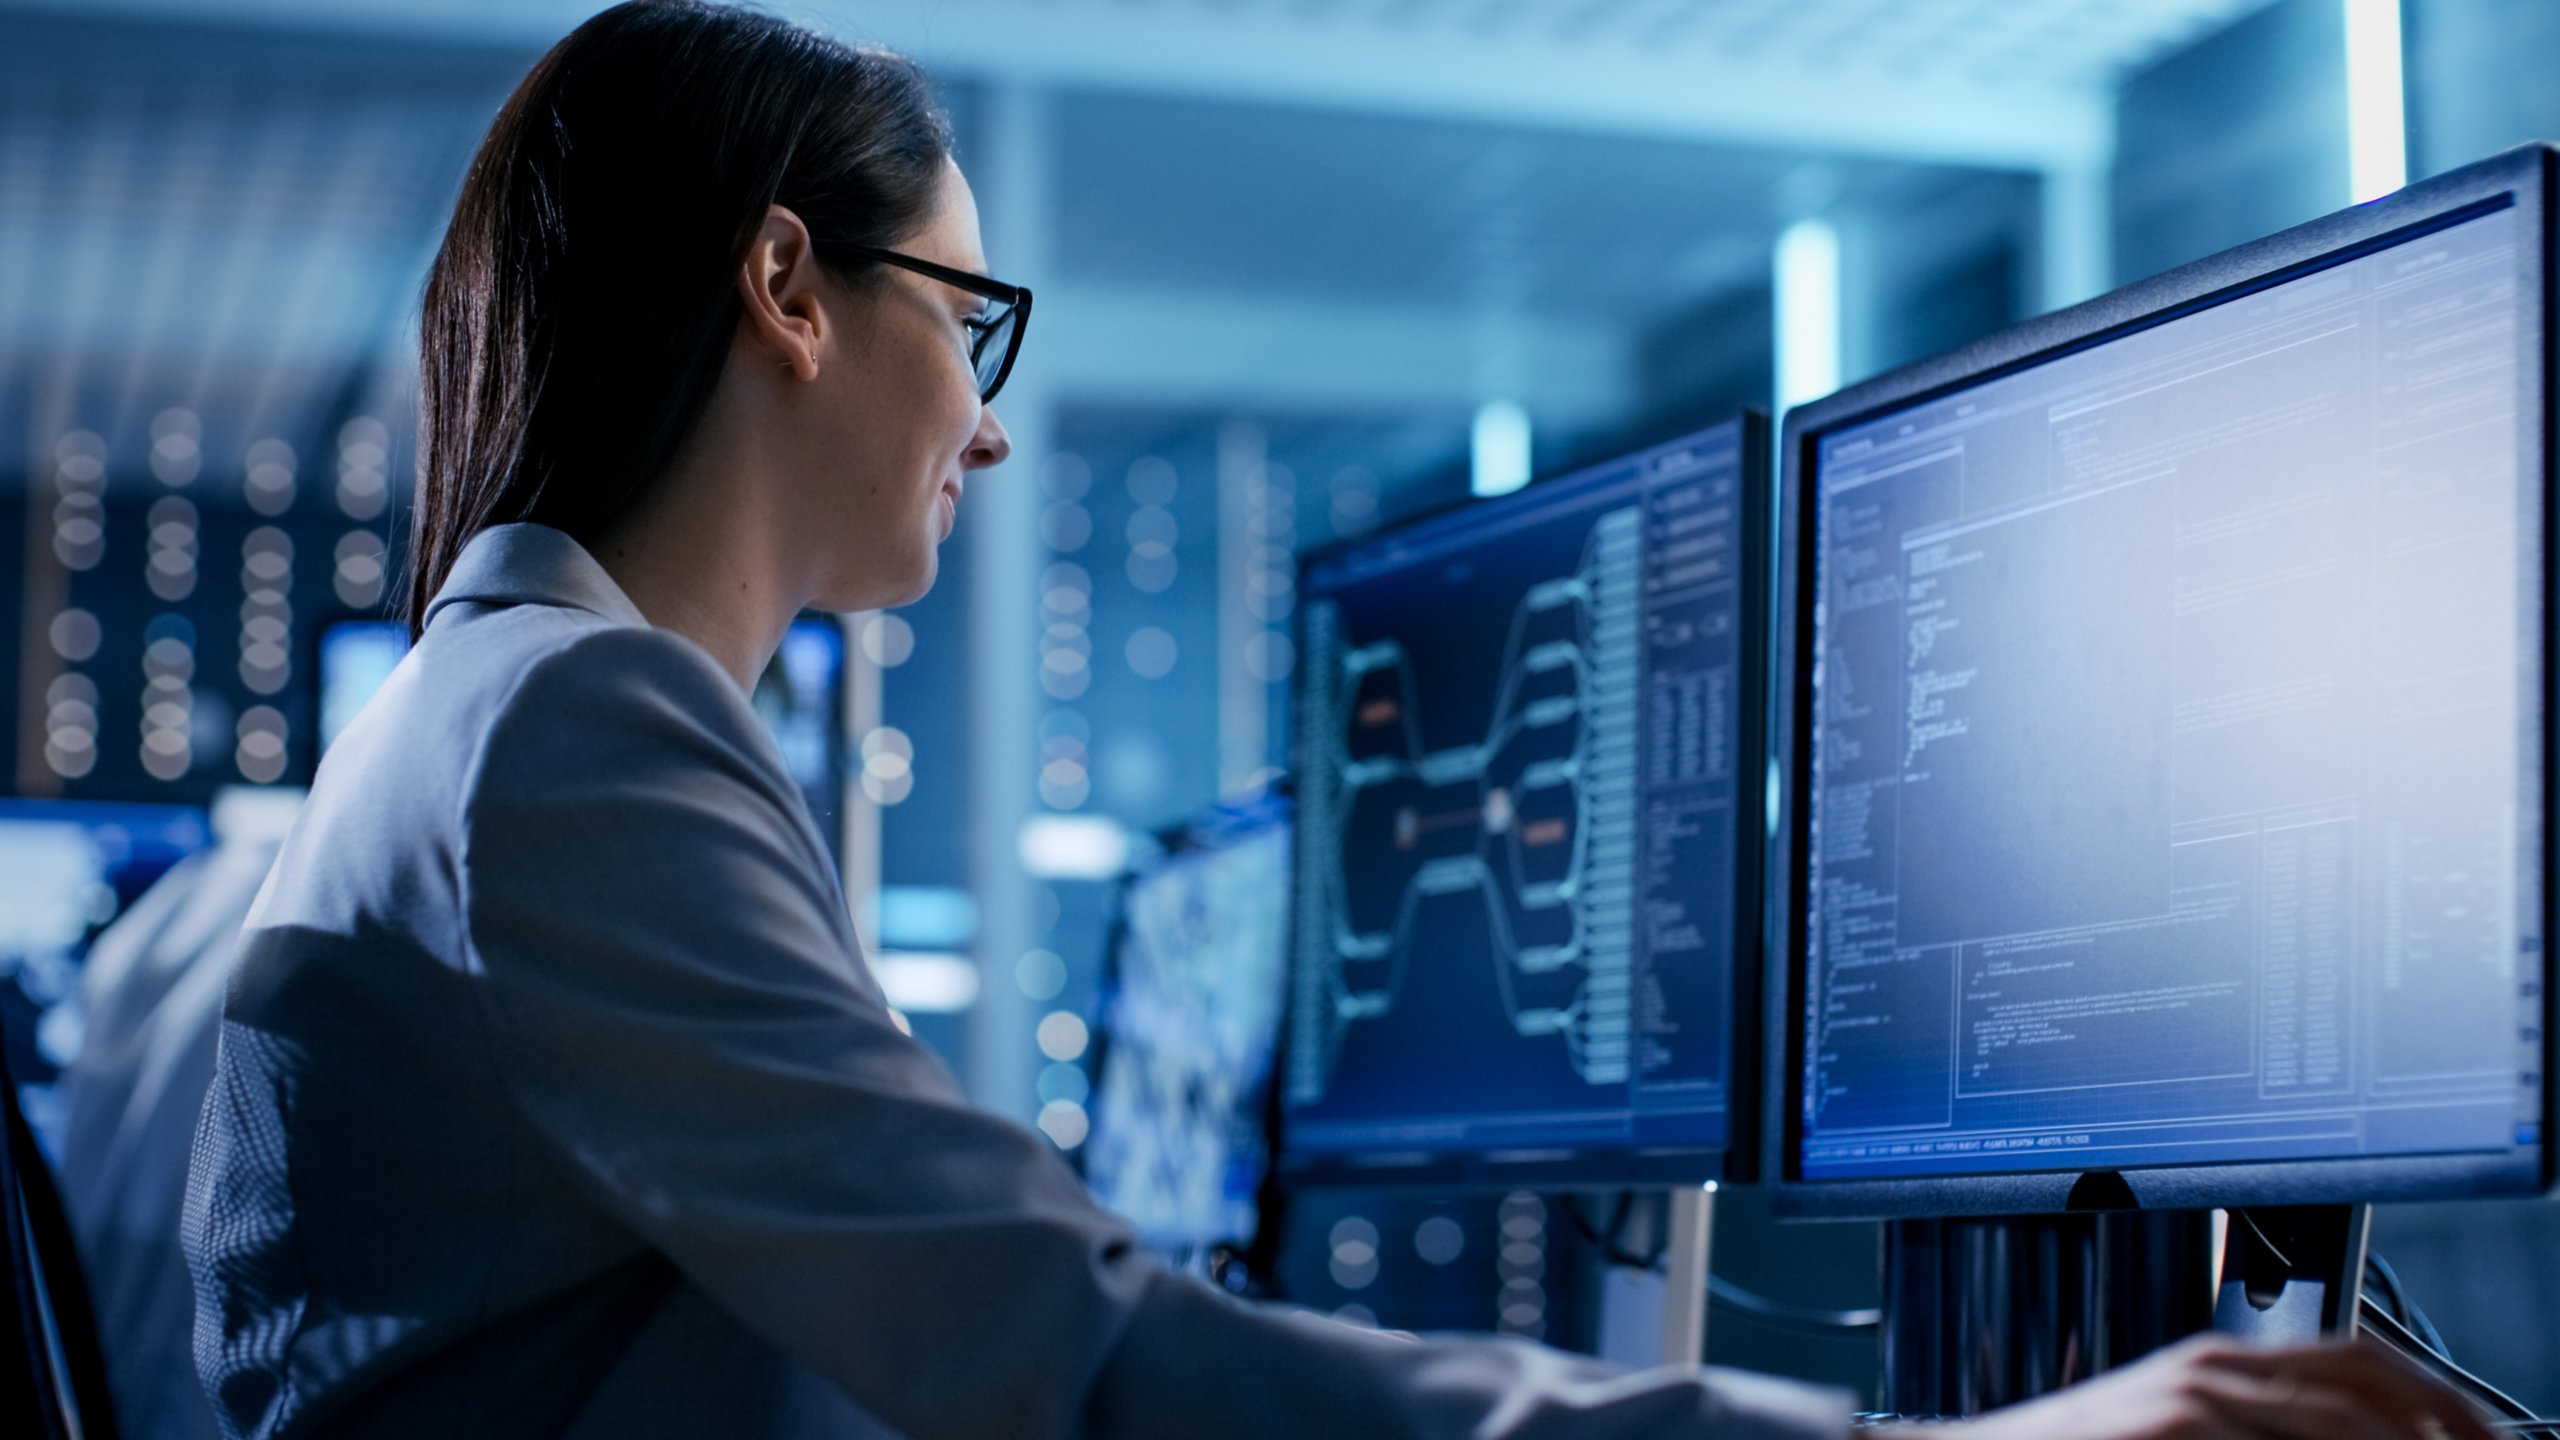 Female employee with glasses sitting beside a coworker in a technical area viewing software on her monitor